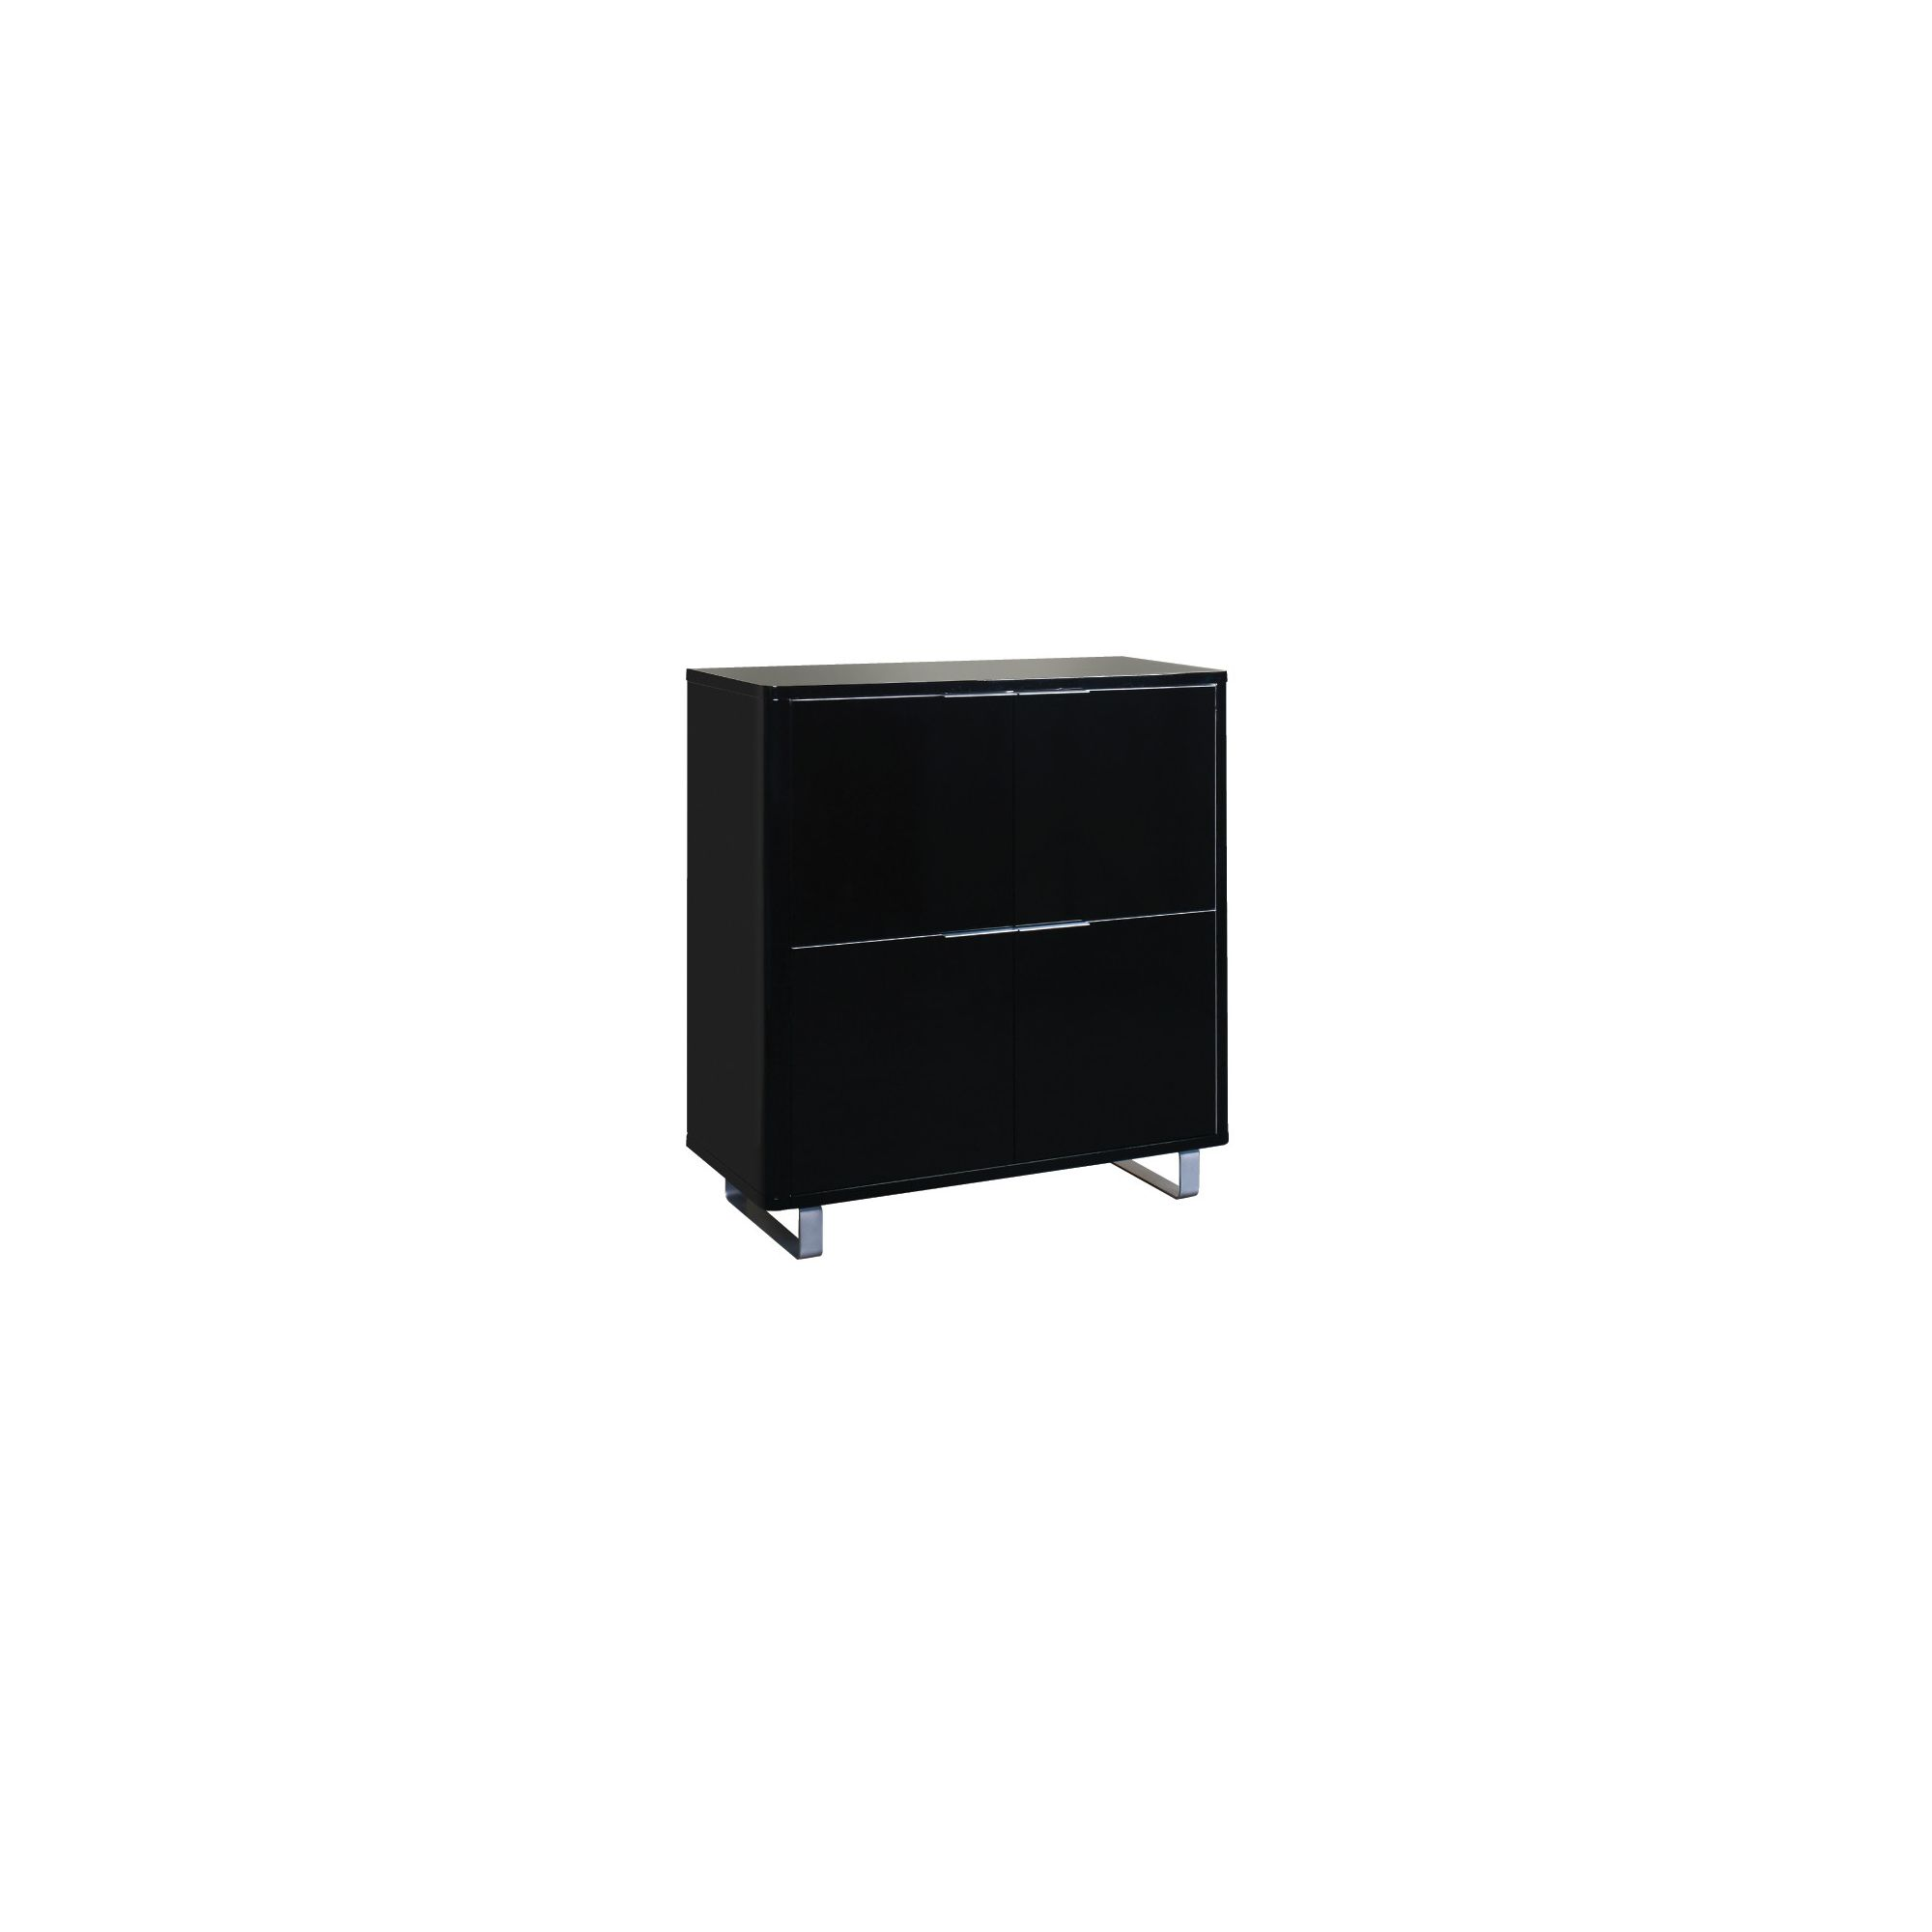 Home Zone Remedy Occasional Four Door Storage Unit - Black at Tesco Direct